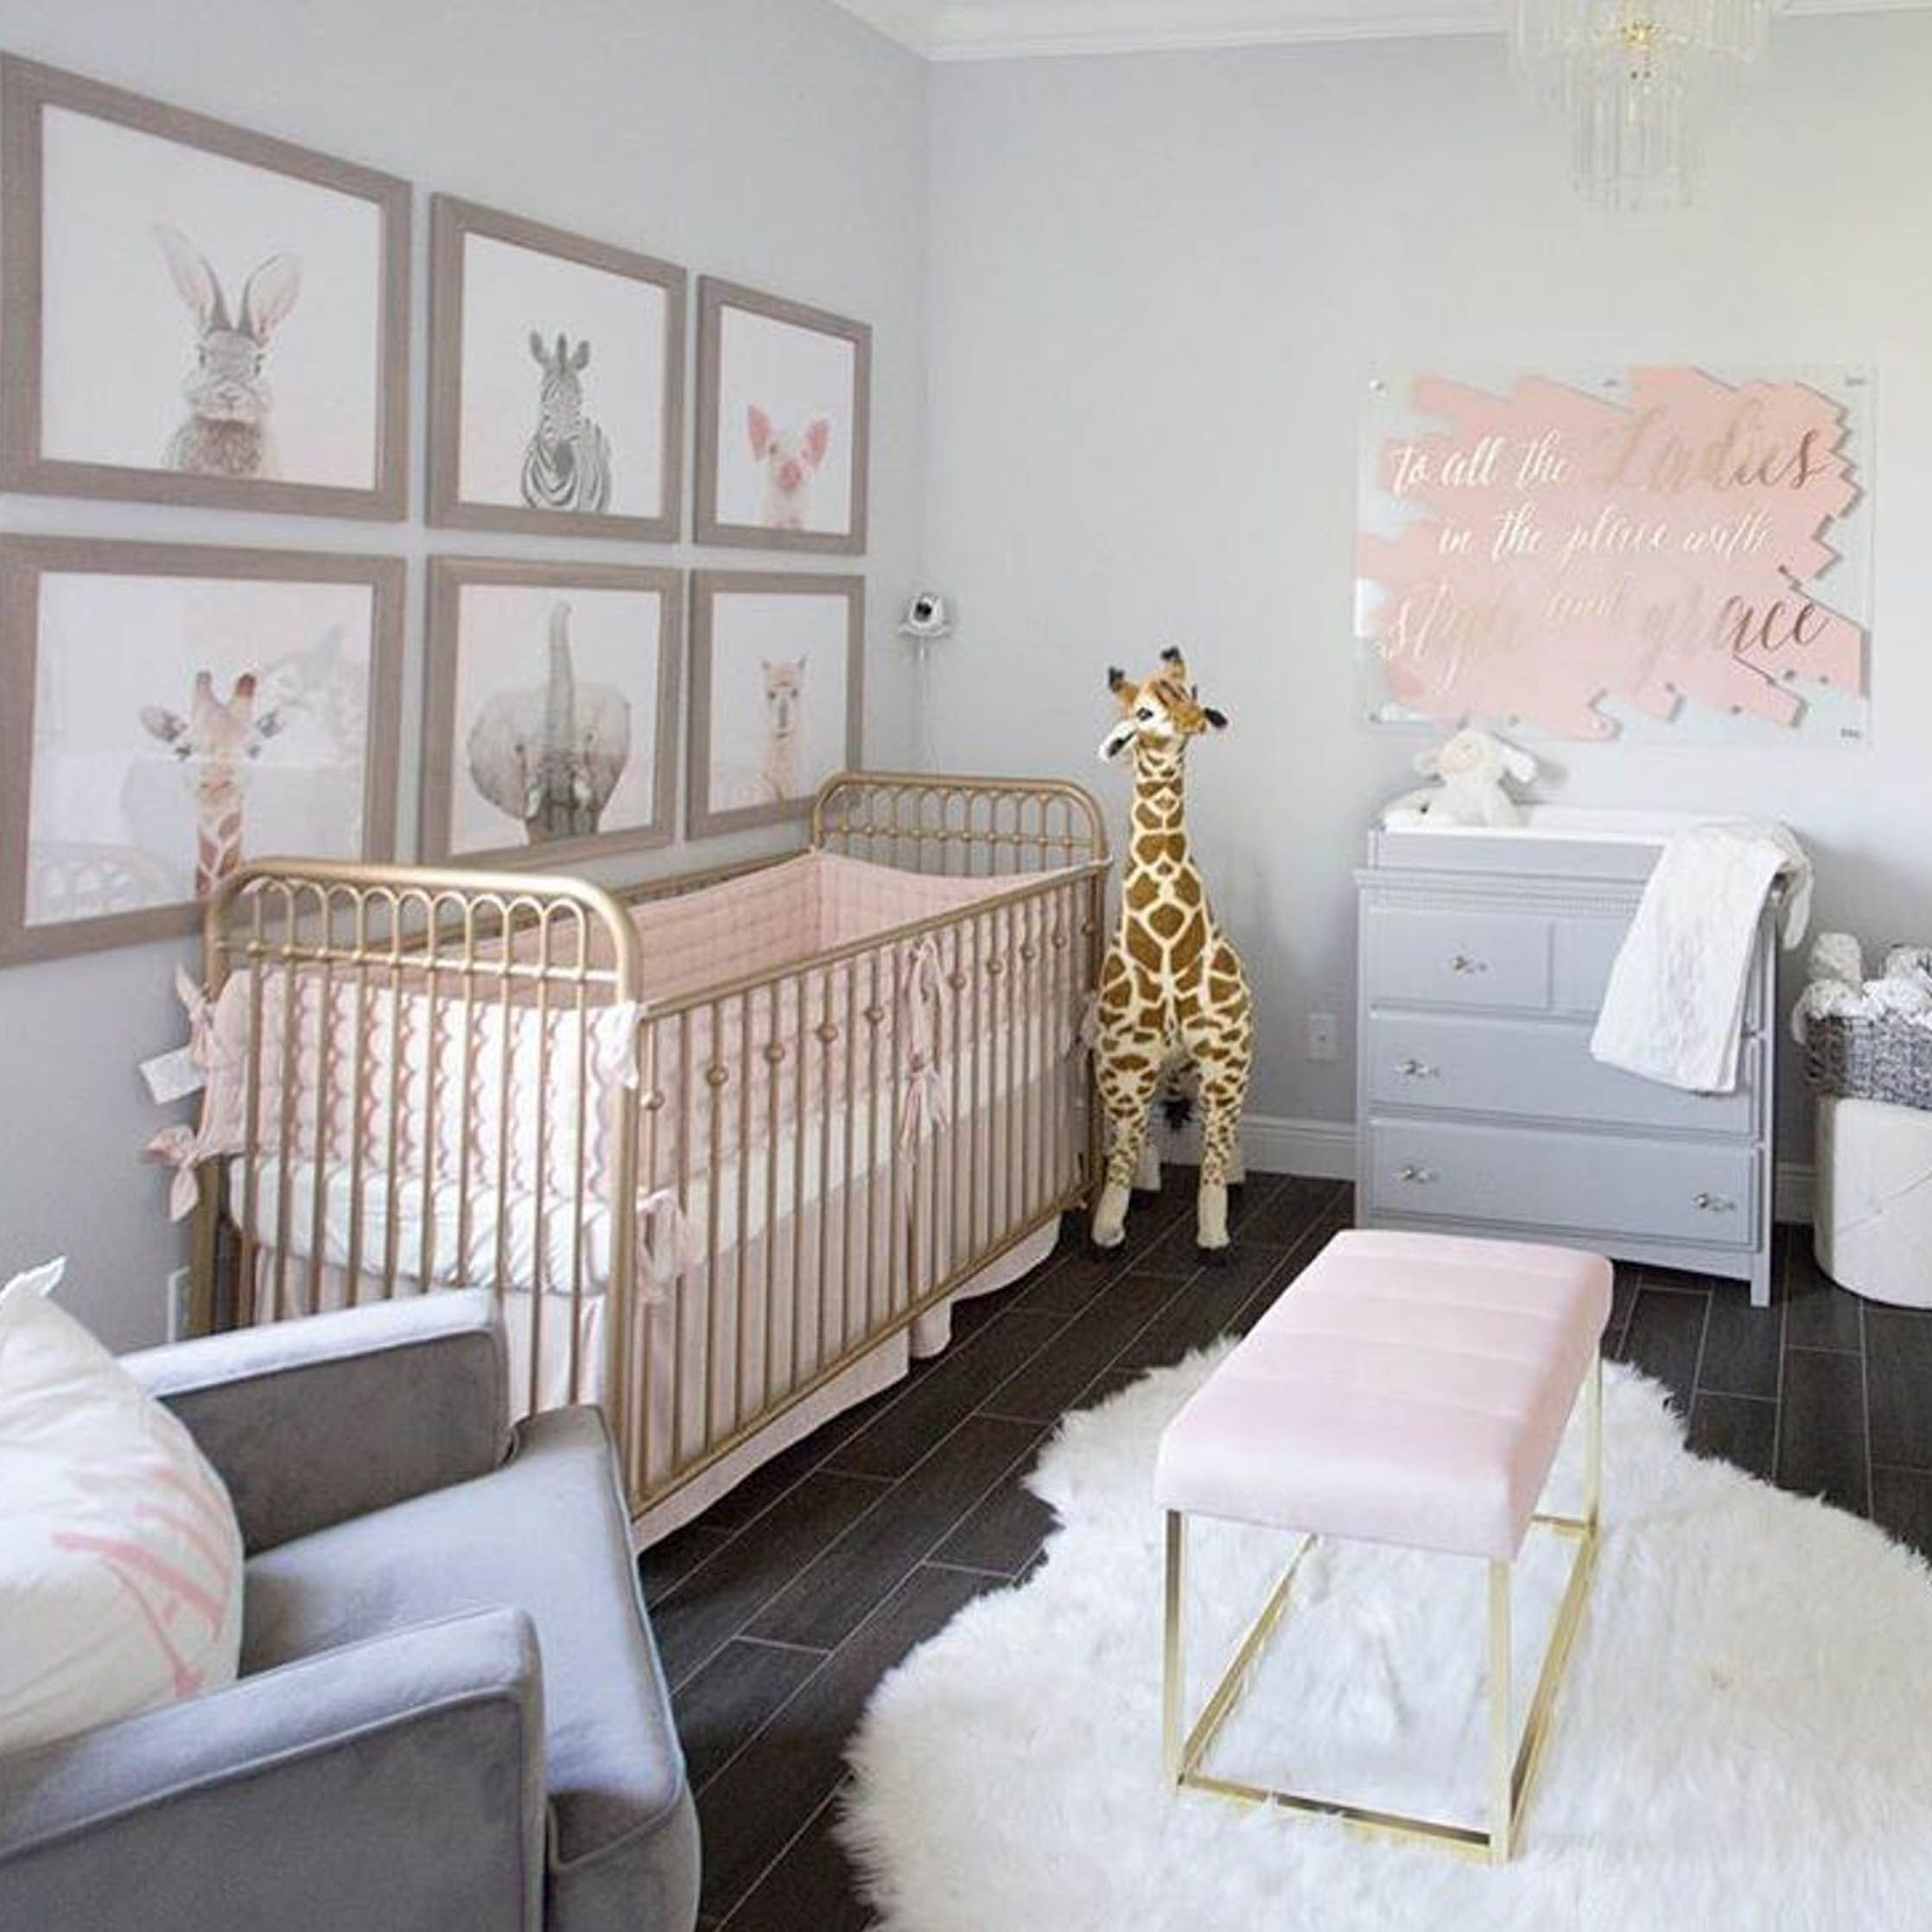 Baby Room Ideas Nursery Themes And Decor: Pin On Baby Girl Nursery Ideas